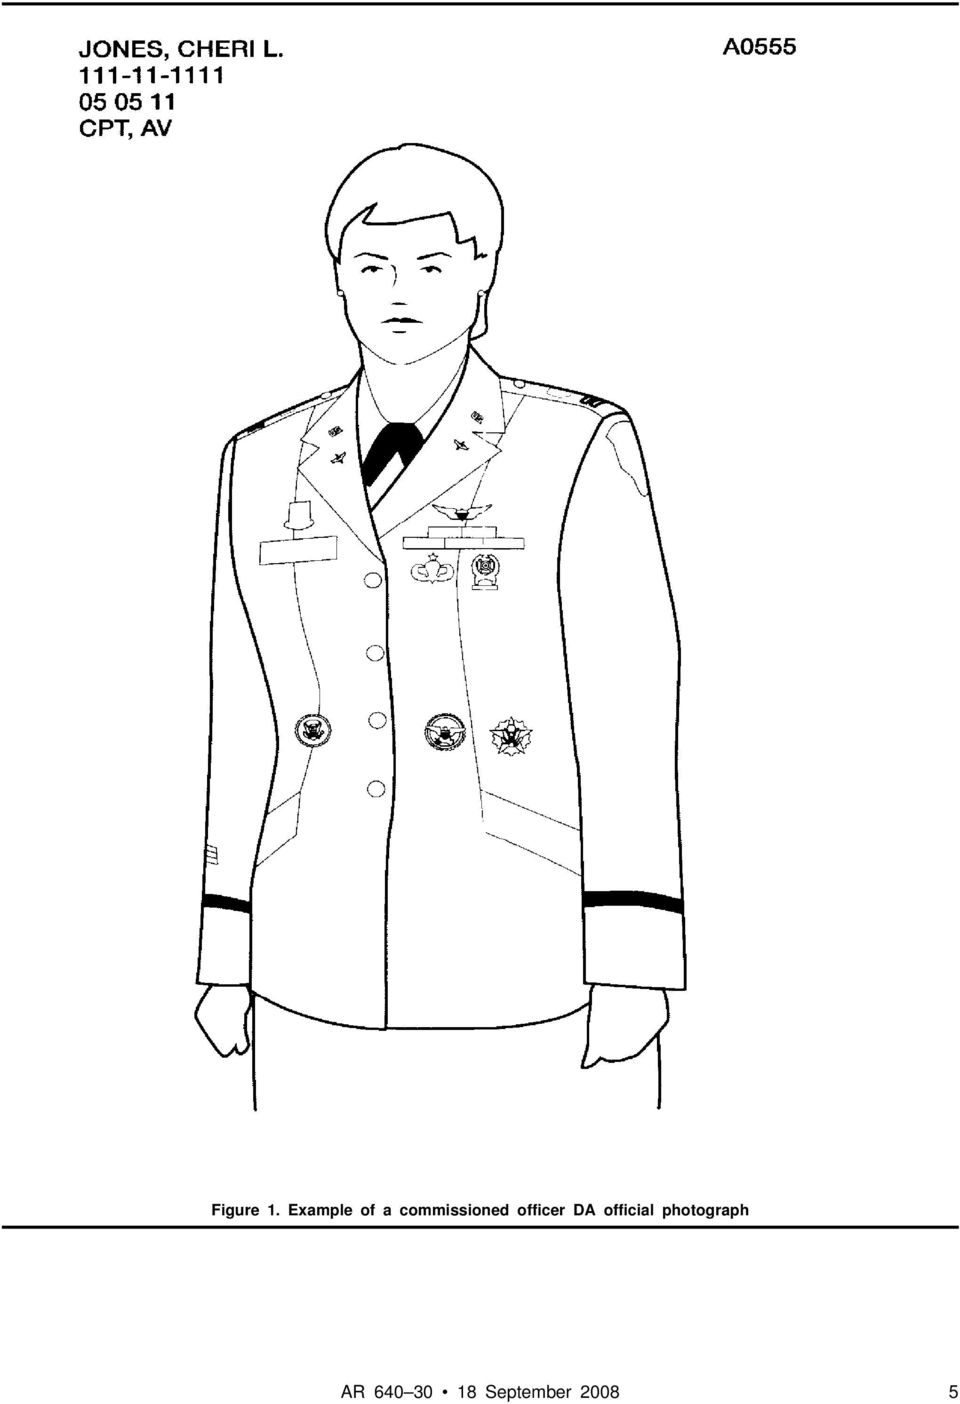 commissioned officer DA